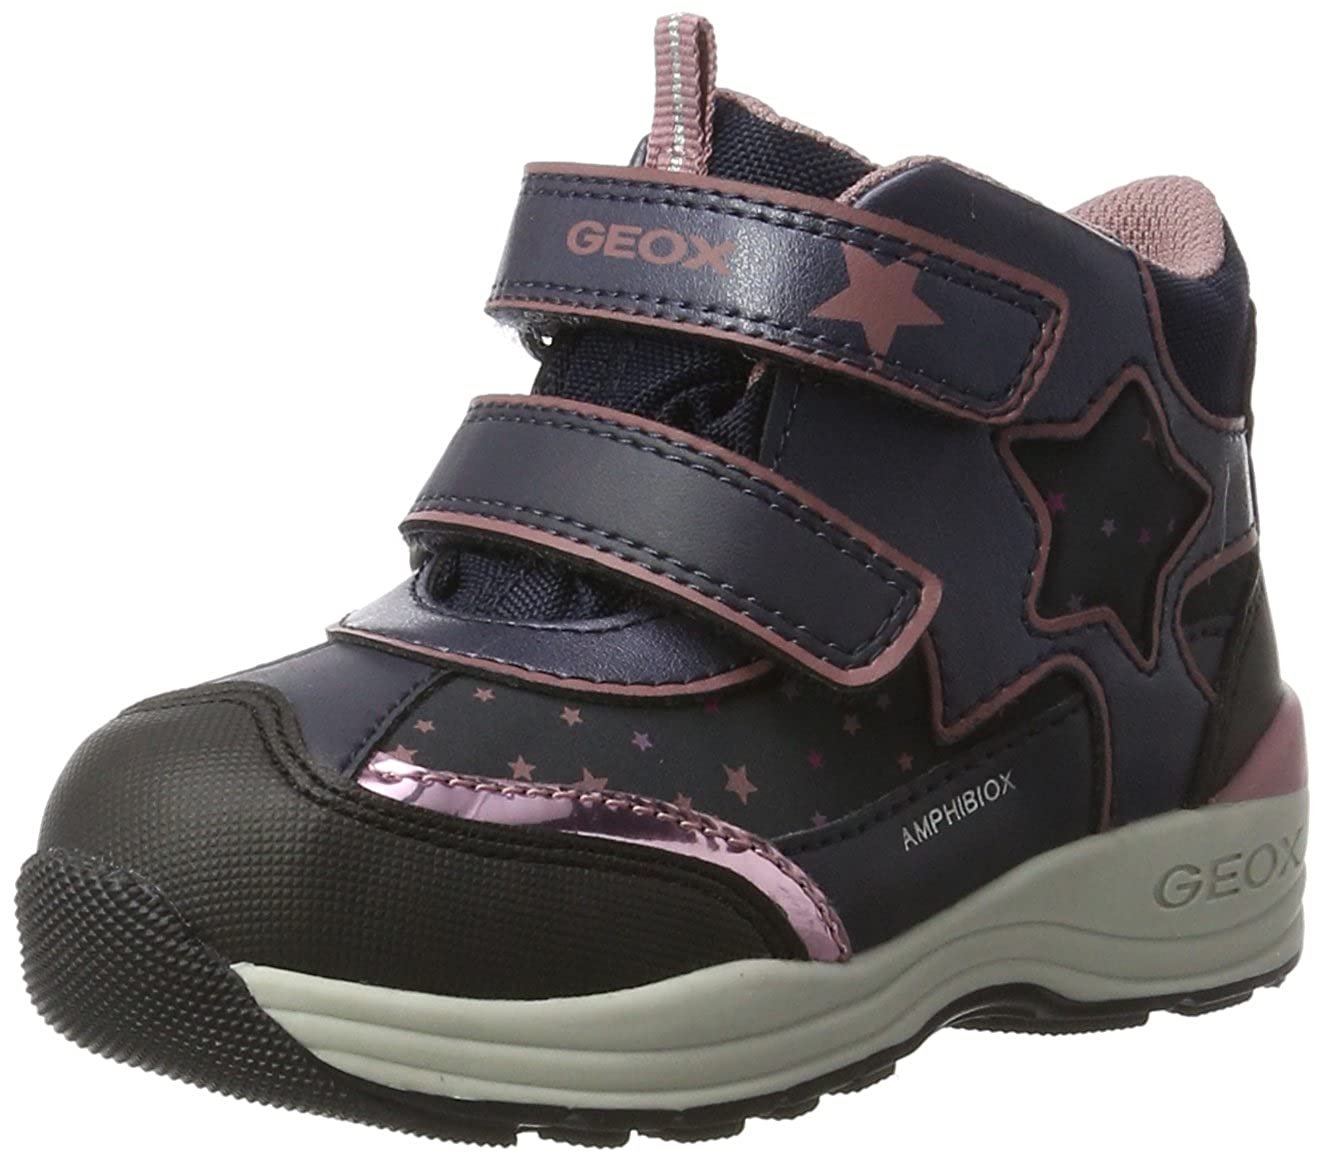 5eef776dcb85f Amazon.com   Geox Kids' New Gulp Girl ABX 1 Ankle Boot   Boots